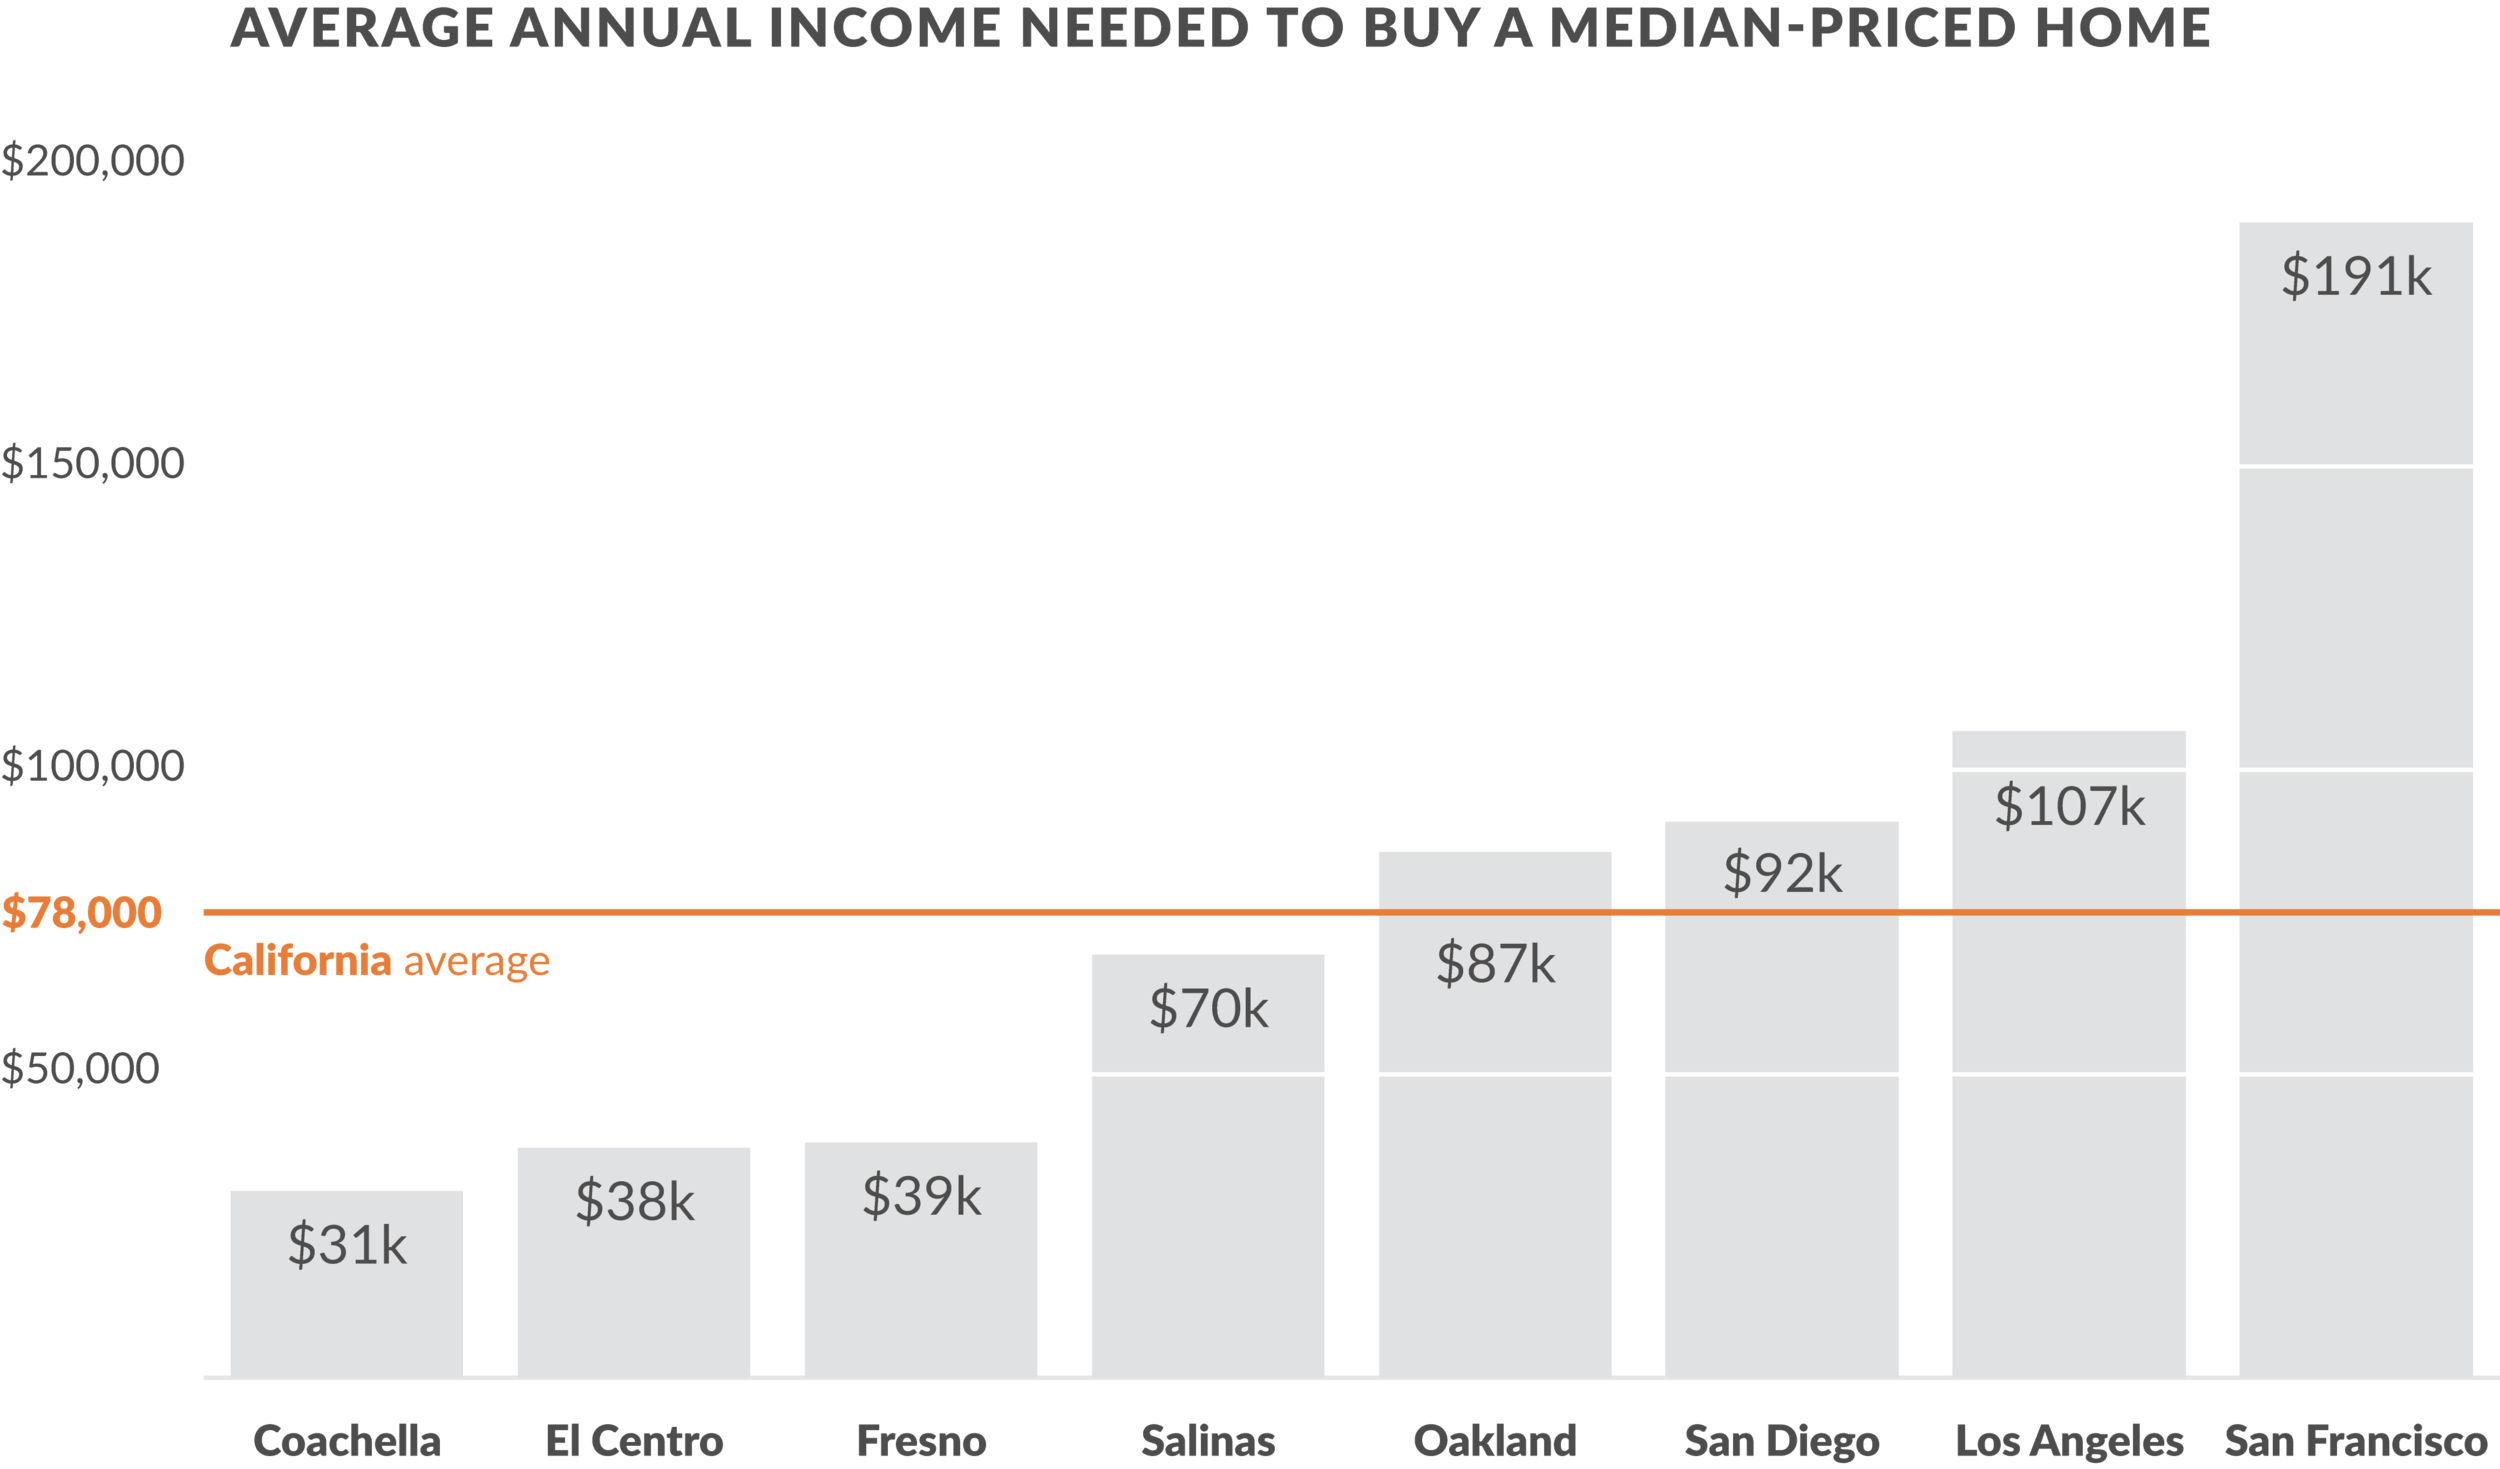 Income needed to purchase a median-priced home (20% down payment) in various California cities. Source:  Sacramento Bee